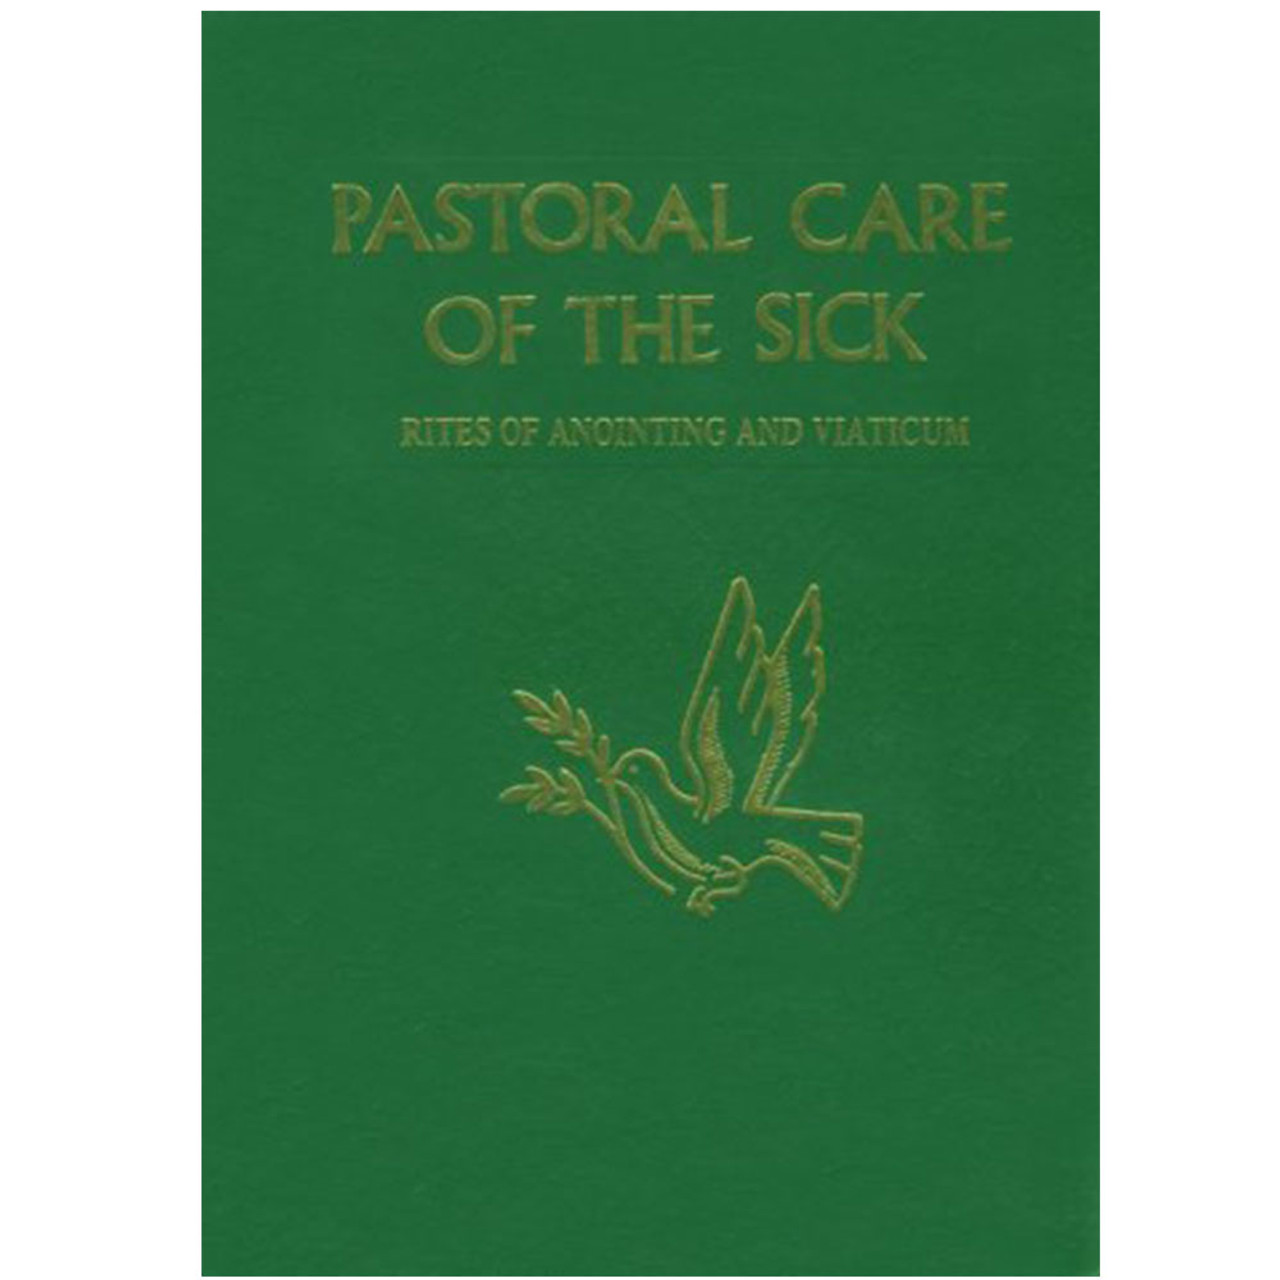 Pastoral Care of the Sick Rite of Annointing